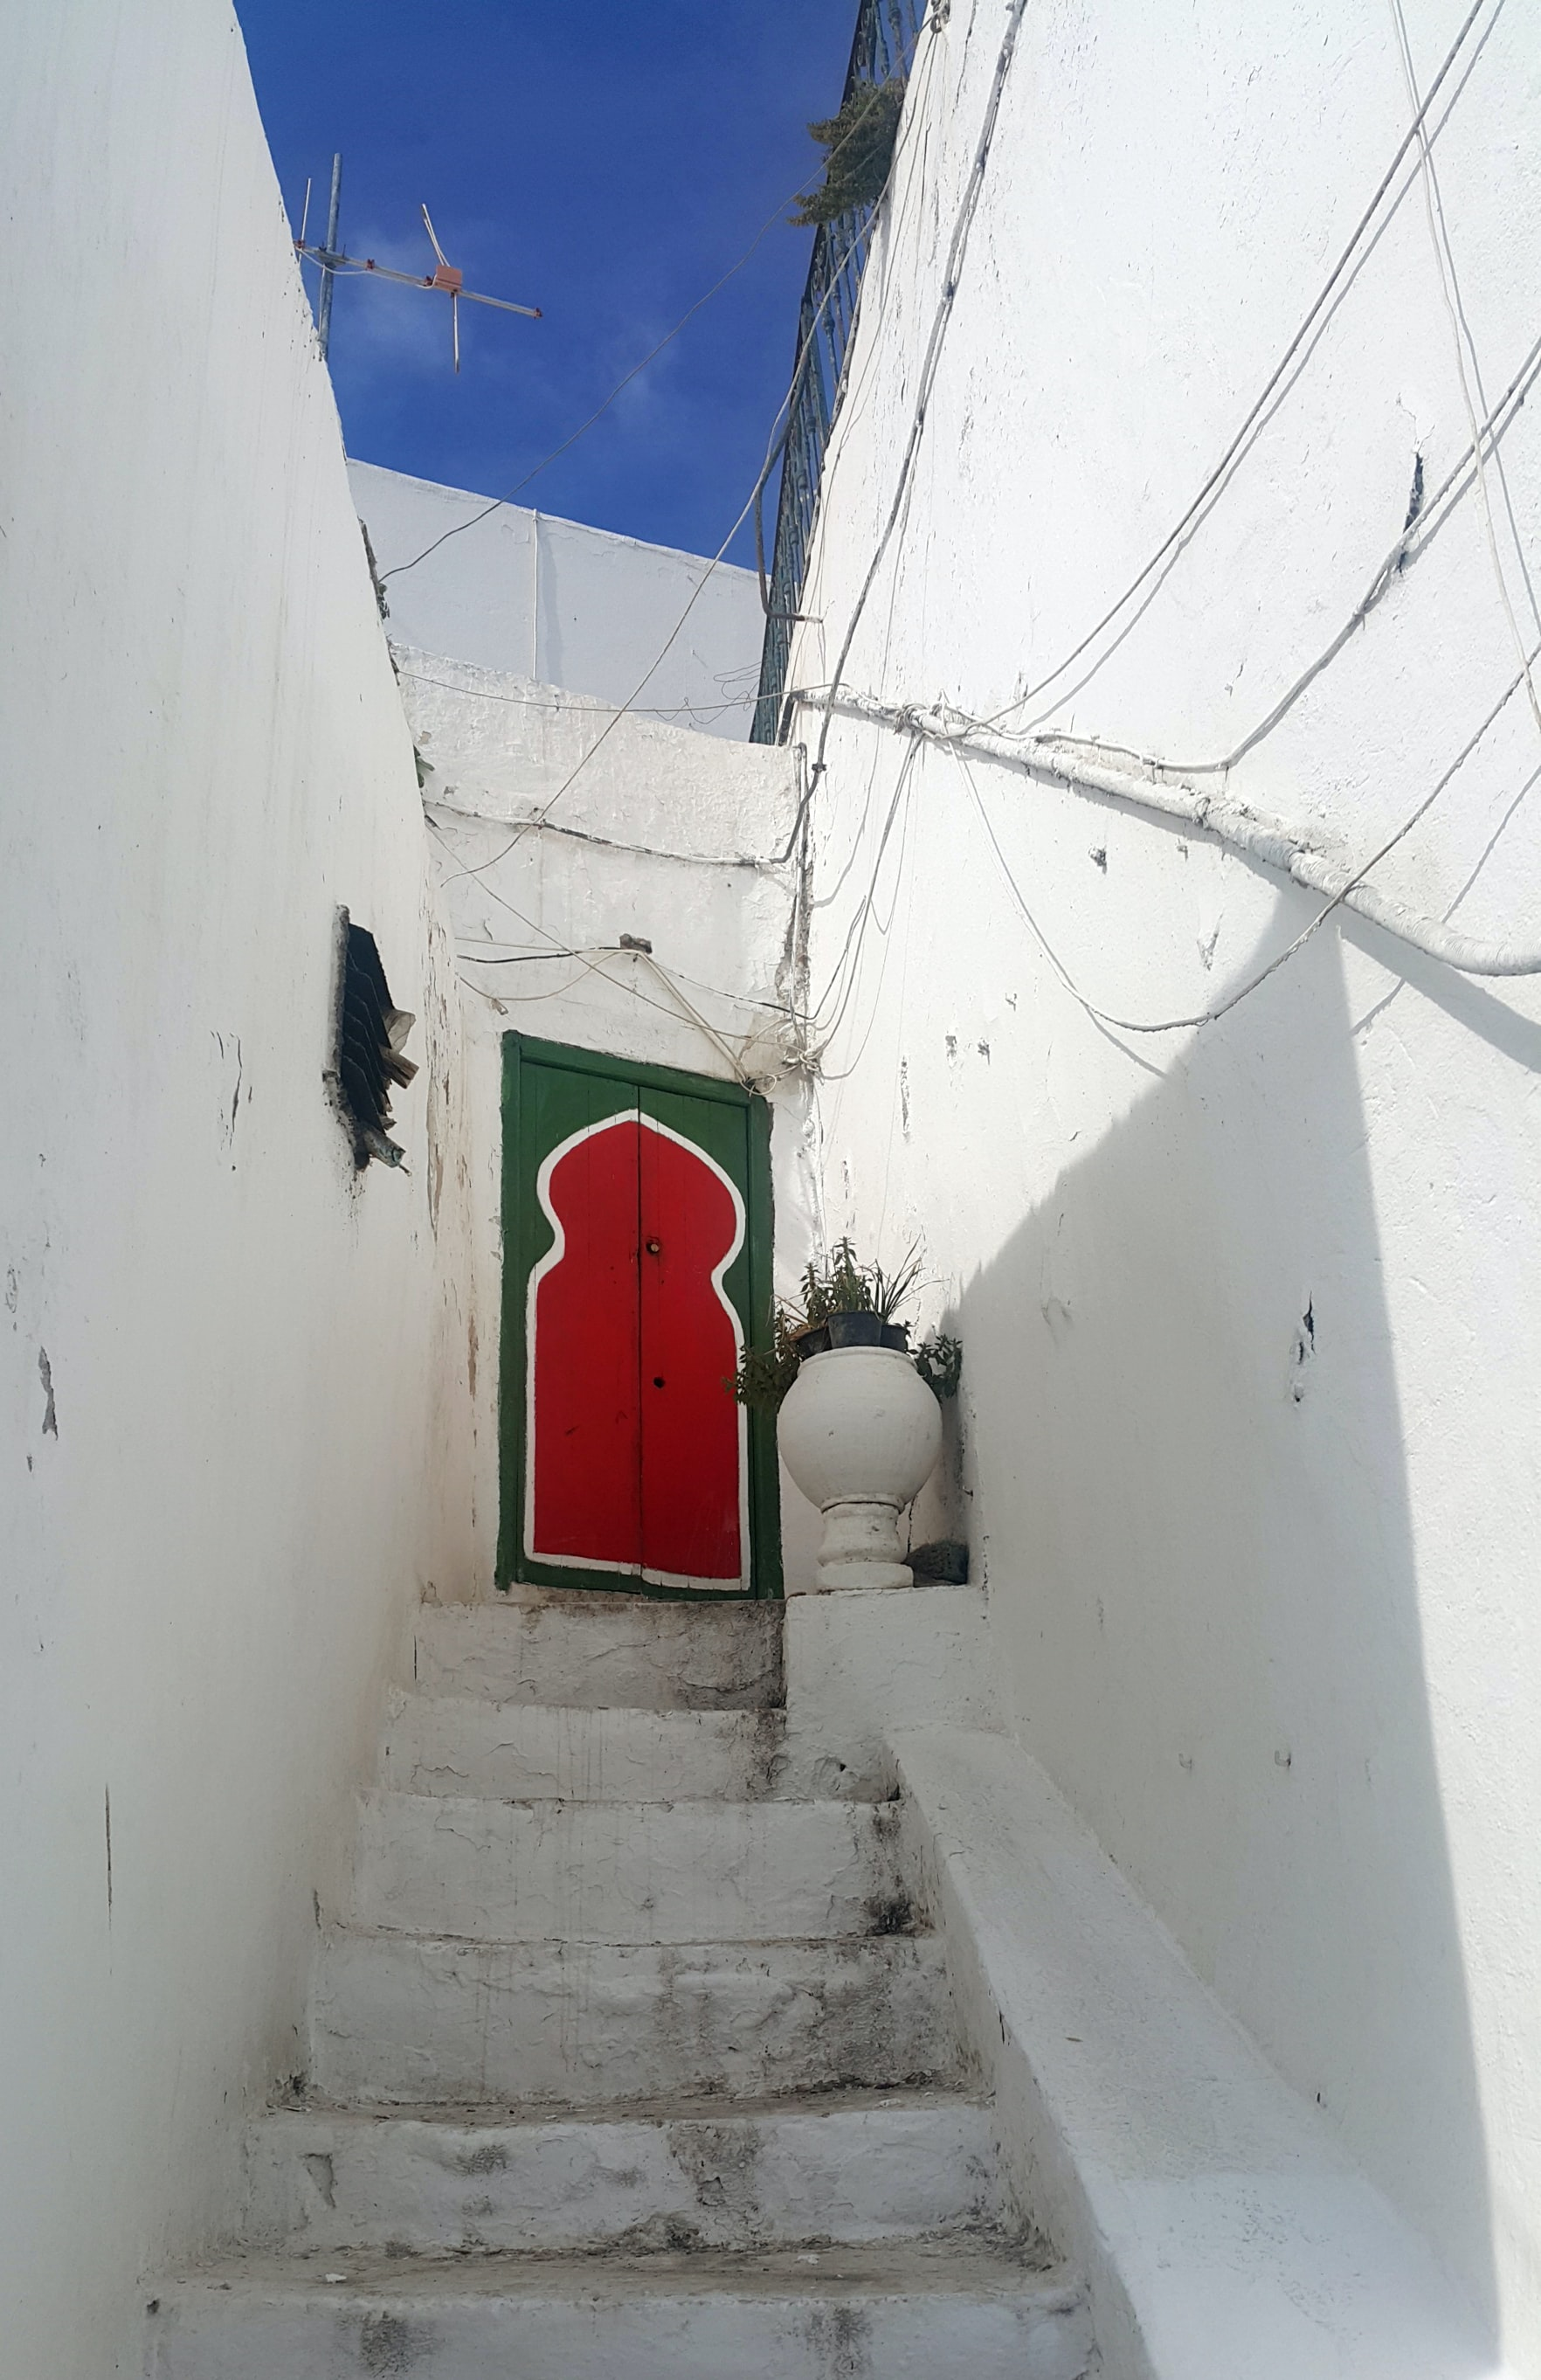 red-and-green door near white wall